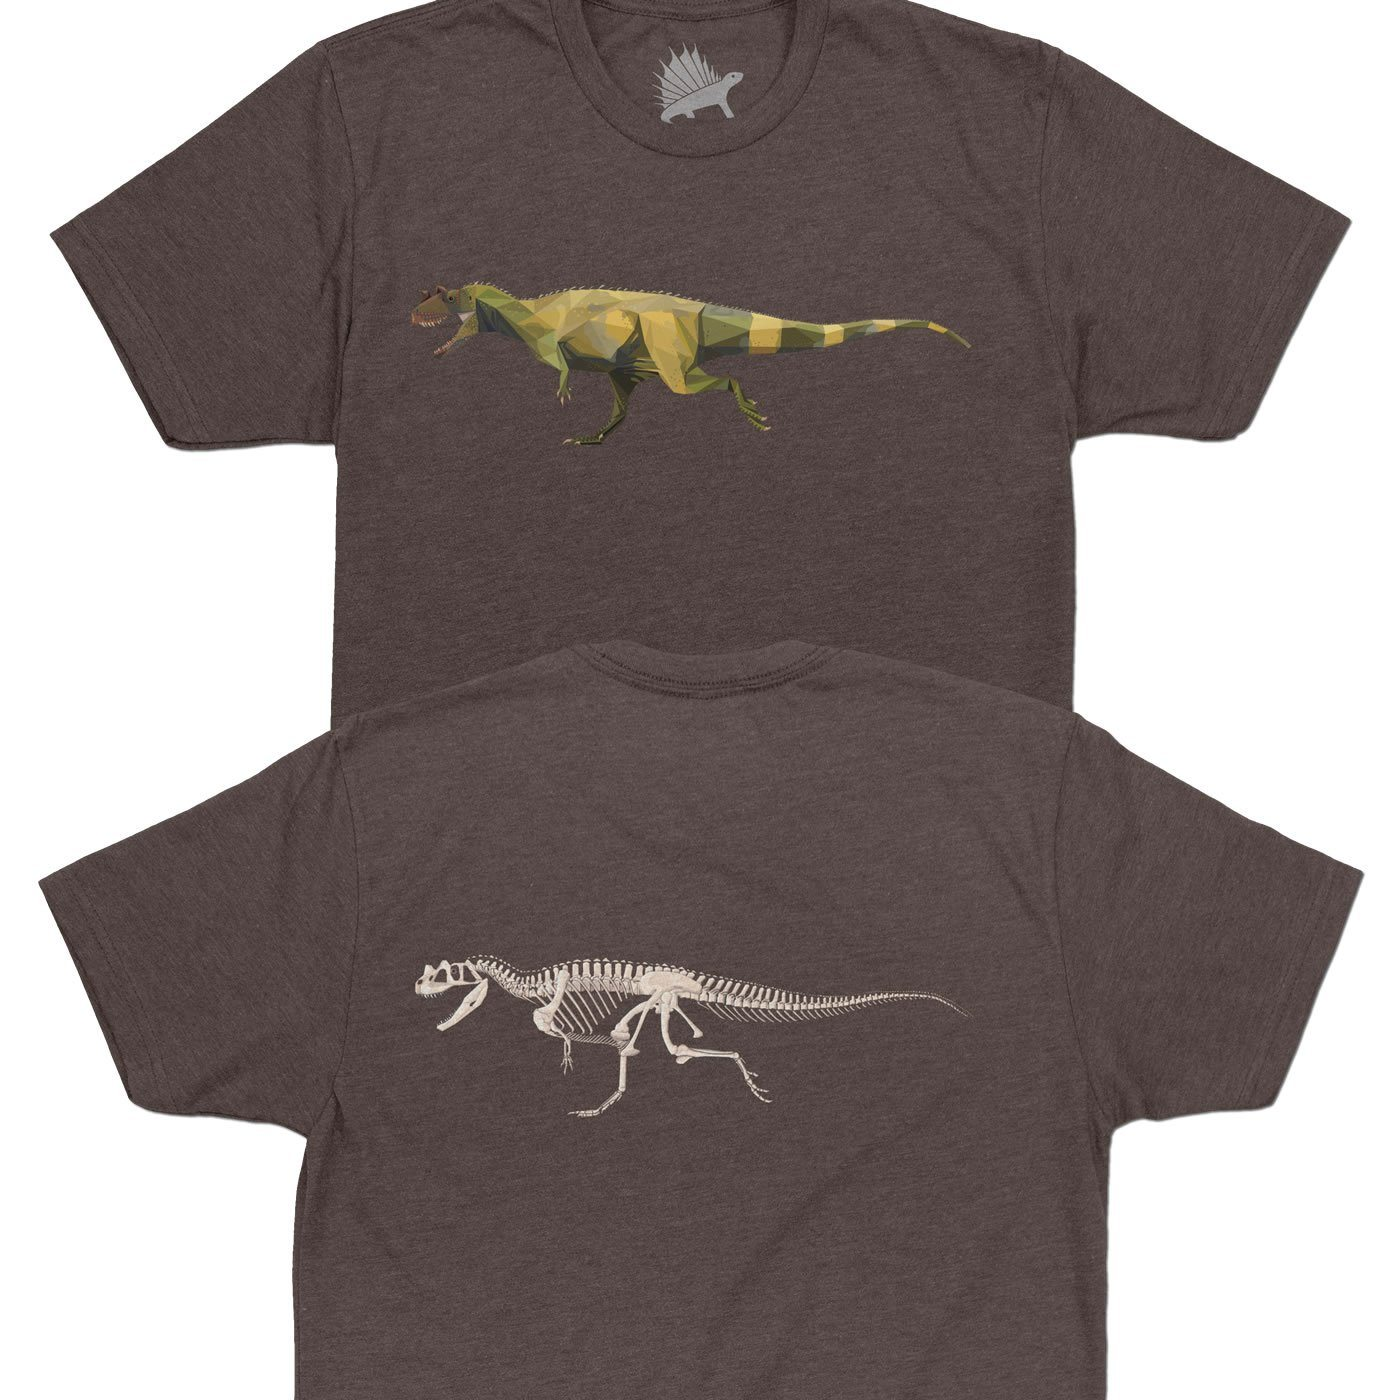 6c113fee3 Ceratosaurus T-Shirt - Unique Dinosaur Shirts for Adults - XS-2XL ...